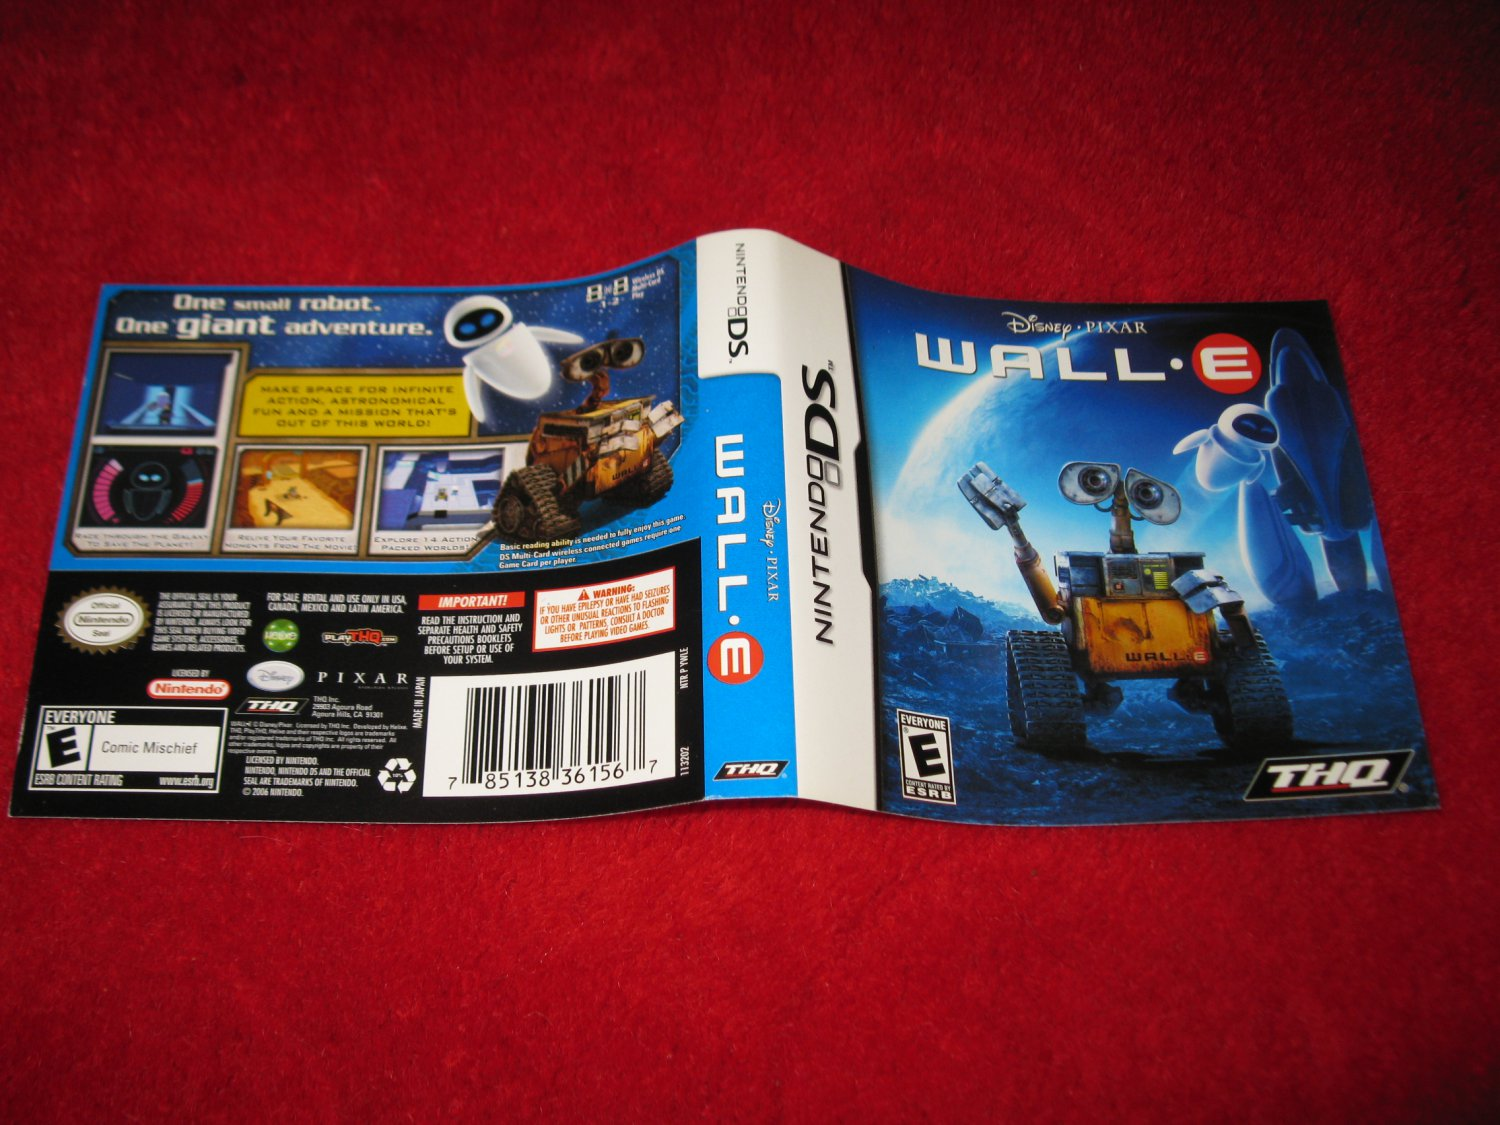 Wall-E : Nintendo DS Video Game Case Cover Art insert